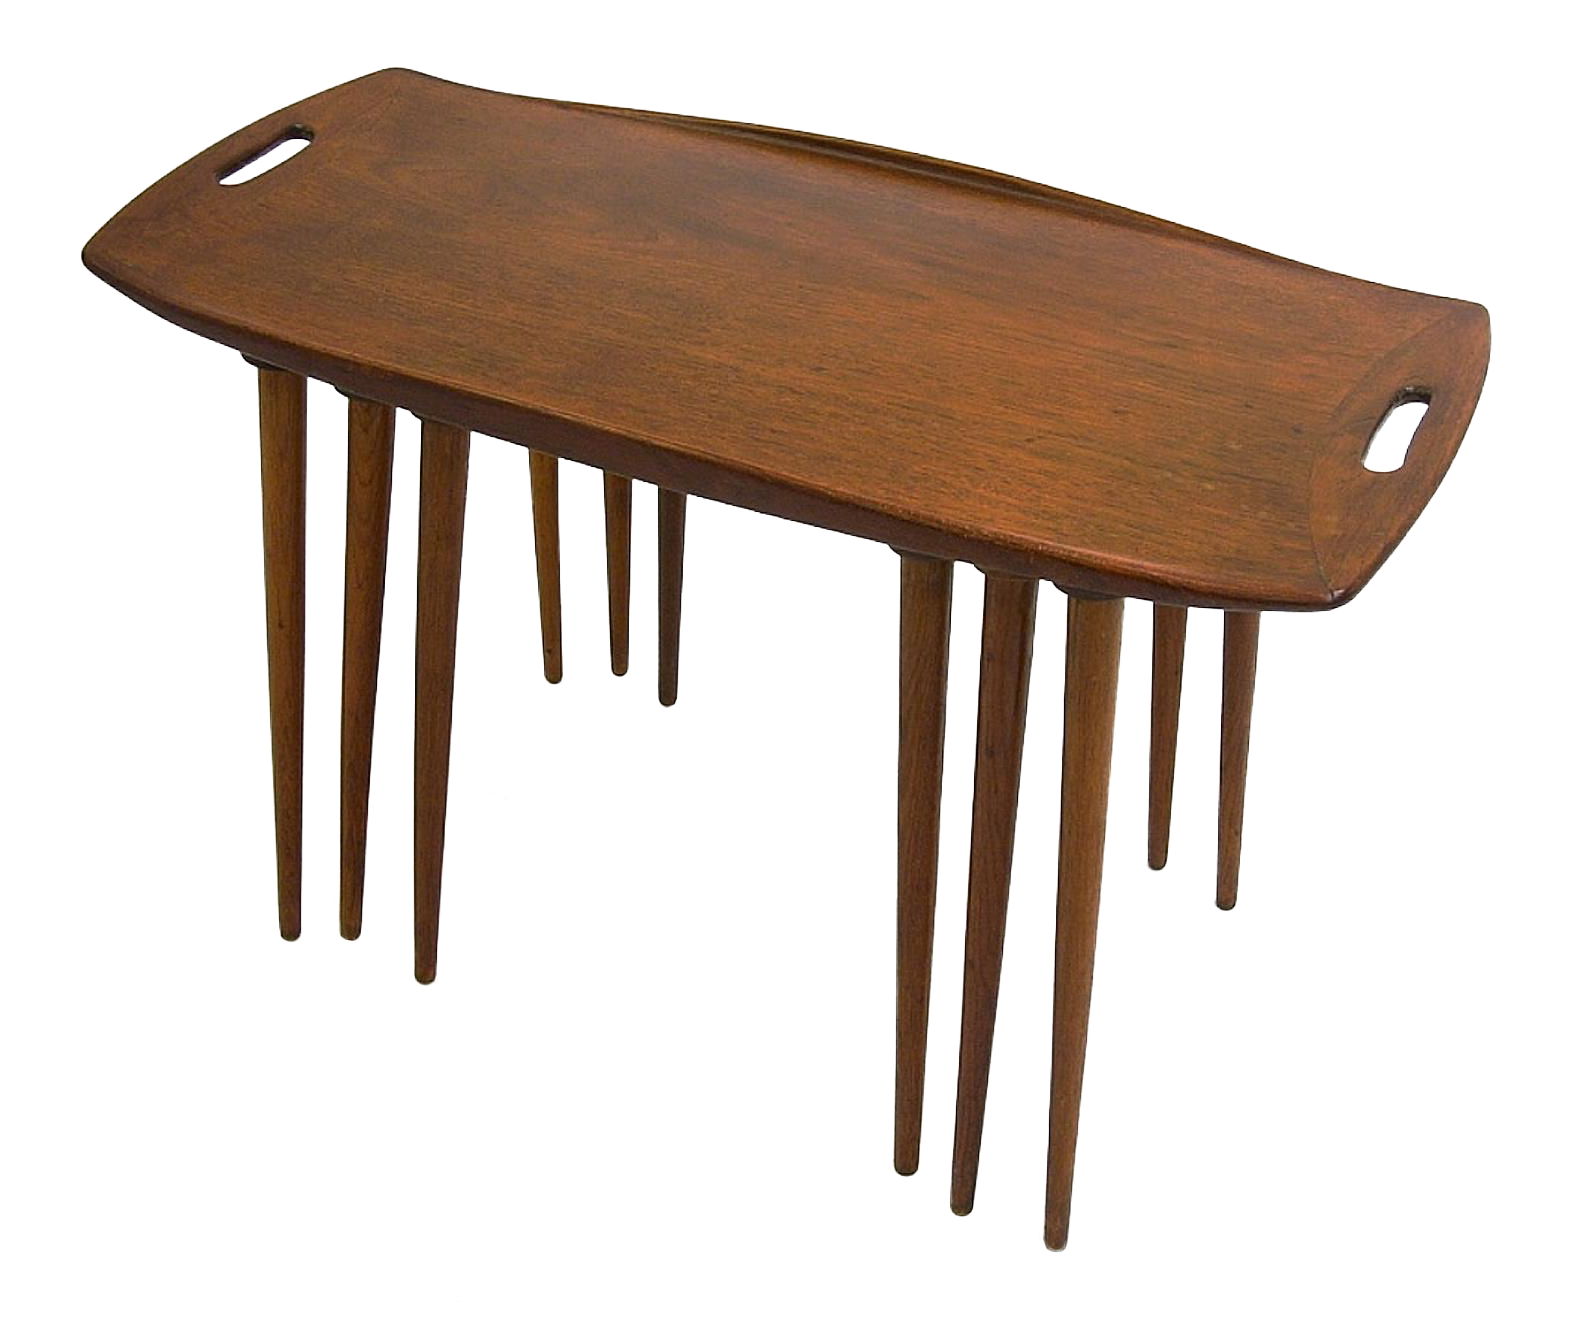 Jens Quistgaard Danish Teak Nesting Tables Set Of 3 Chairish. Full resolution  image, nominally Width 1571 Height 1317 pixels, image with #472A18.